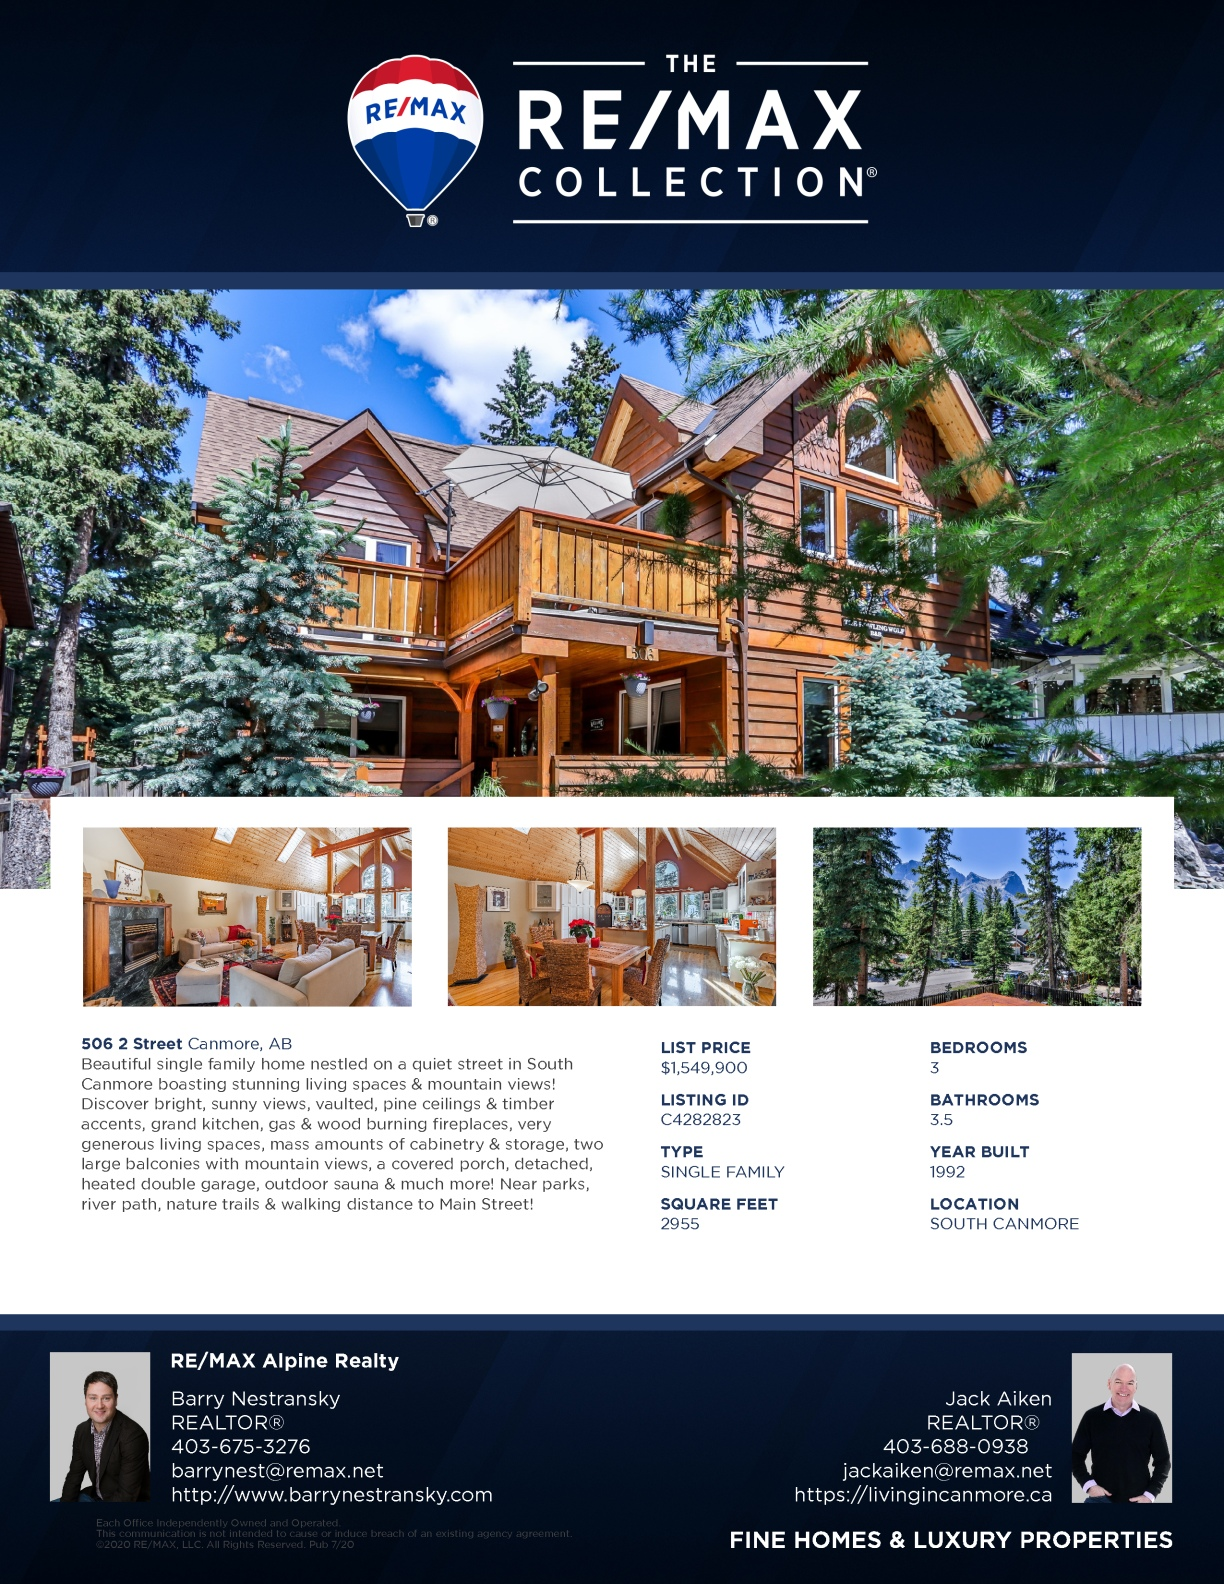 506 2nd Street, Canmore